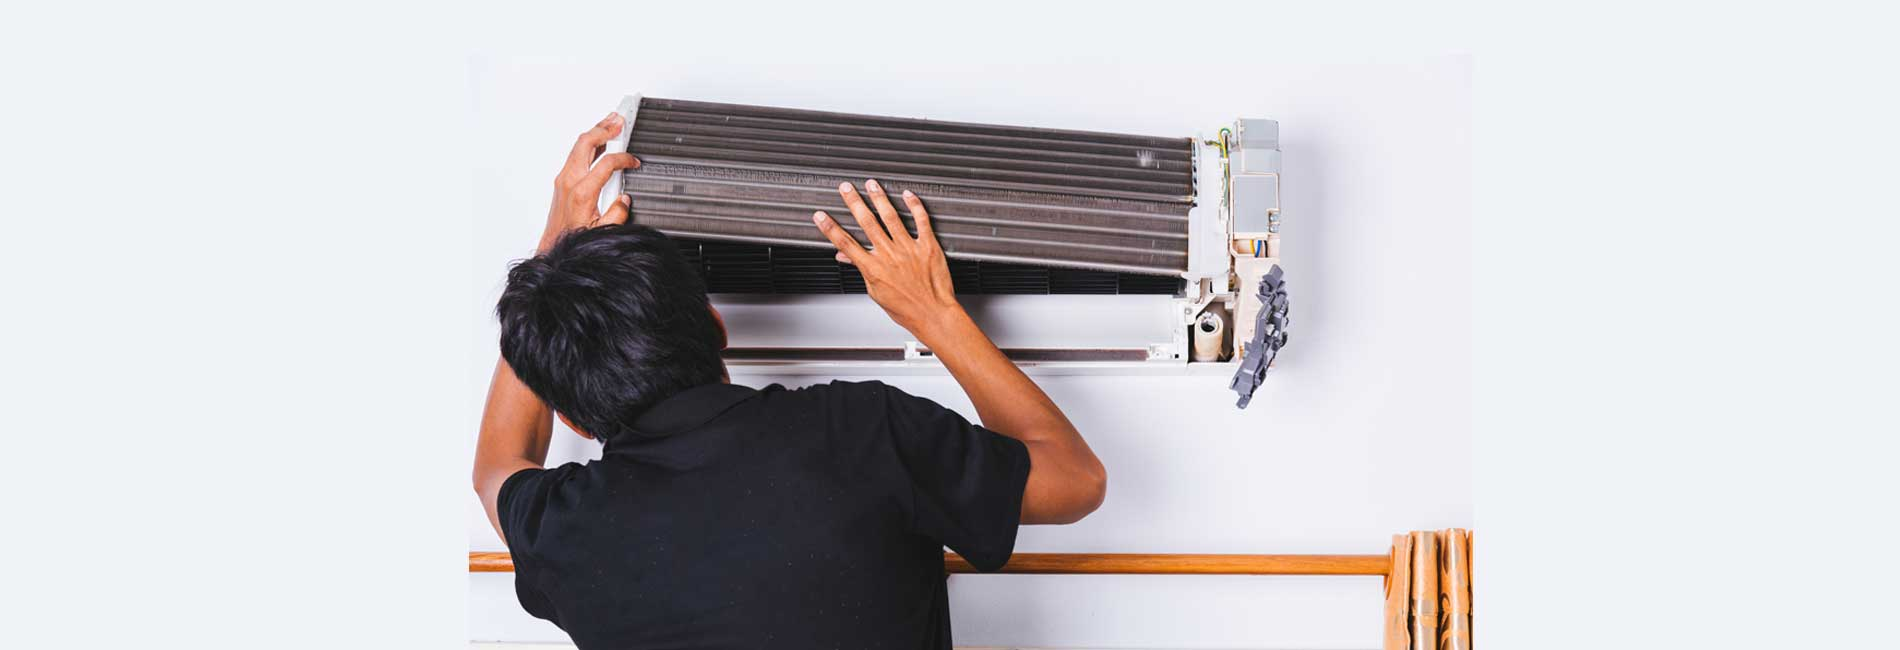 Bluestar Split AC Uninstallation in Kalavakkam